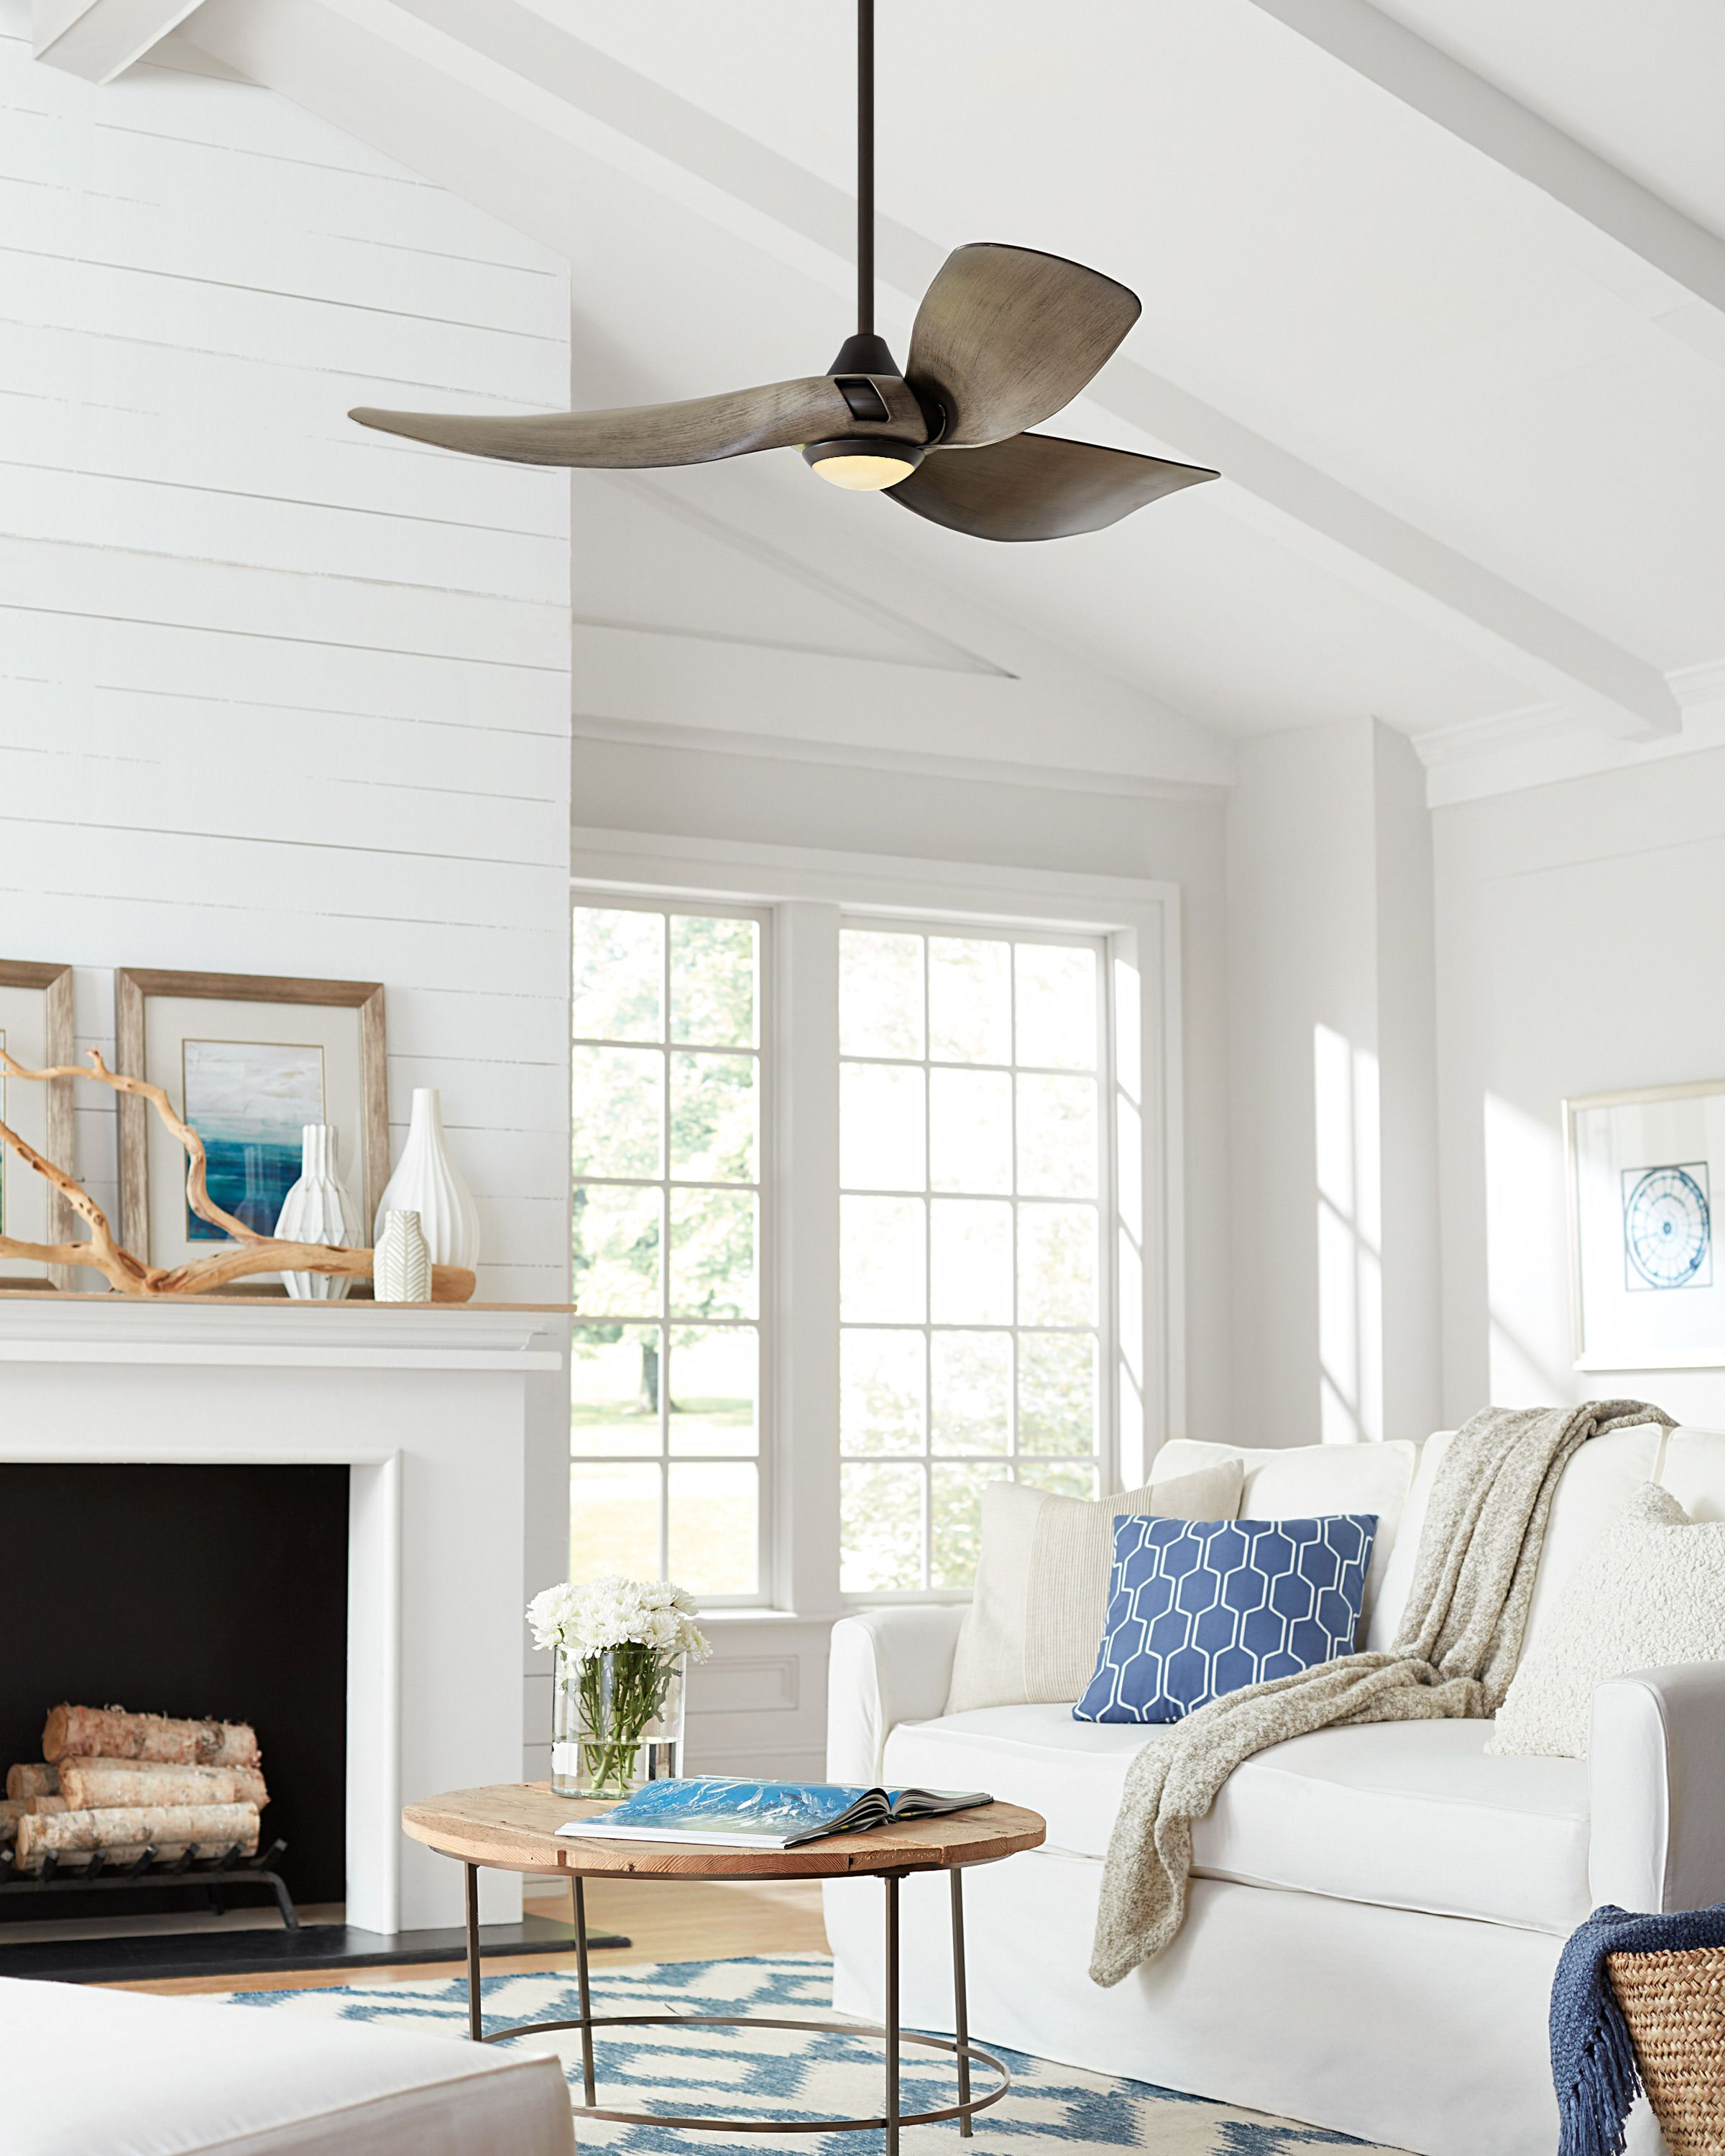 Ceiling fan inspiration from your local lighting showroom ...